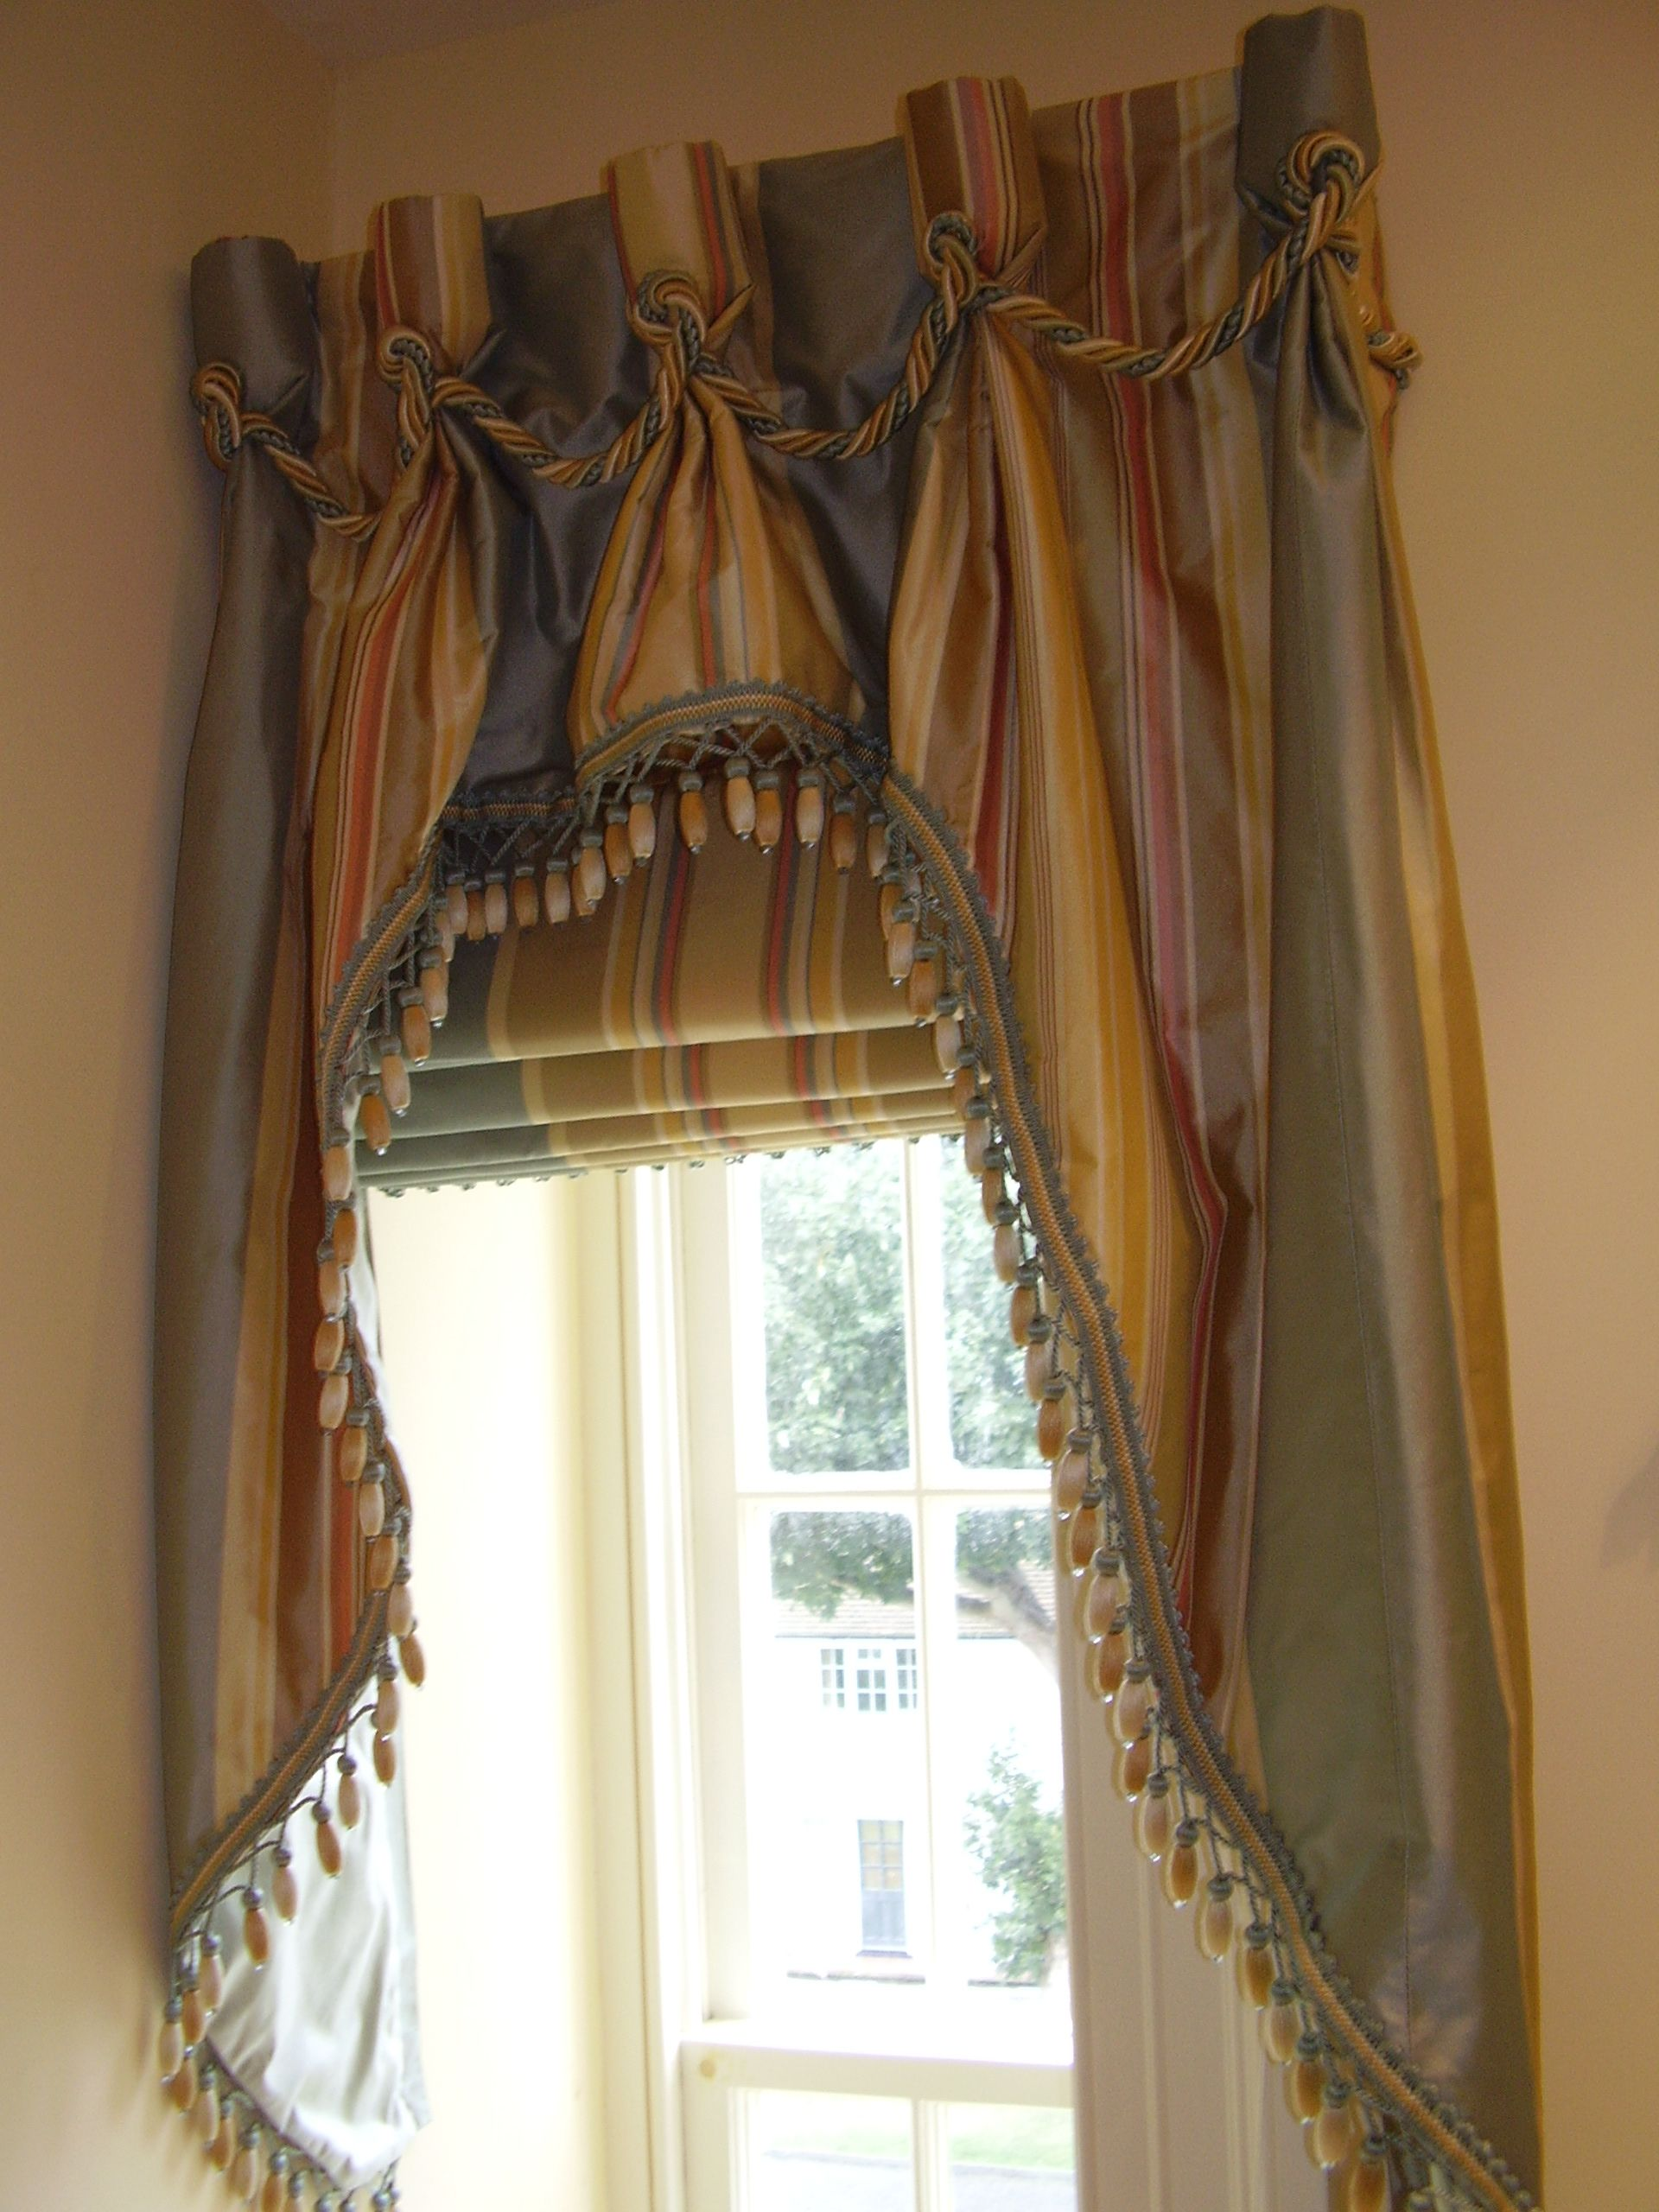 Curtains Valances Pelmets Roman Blinds Roller Blinds